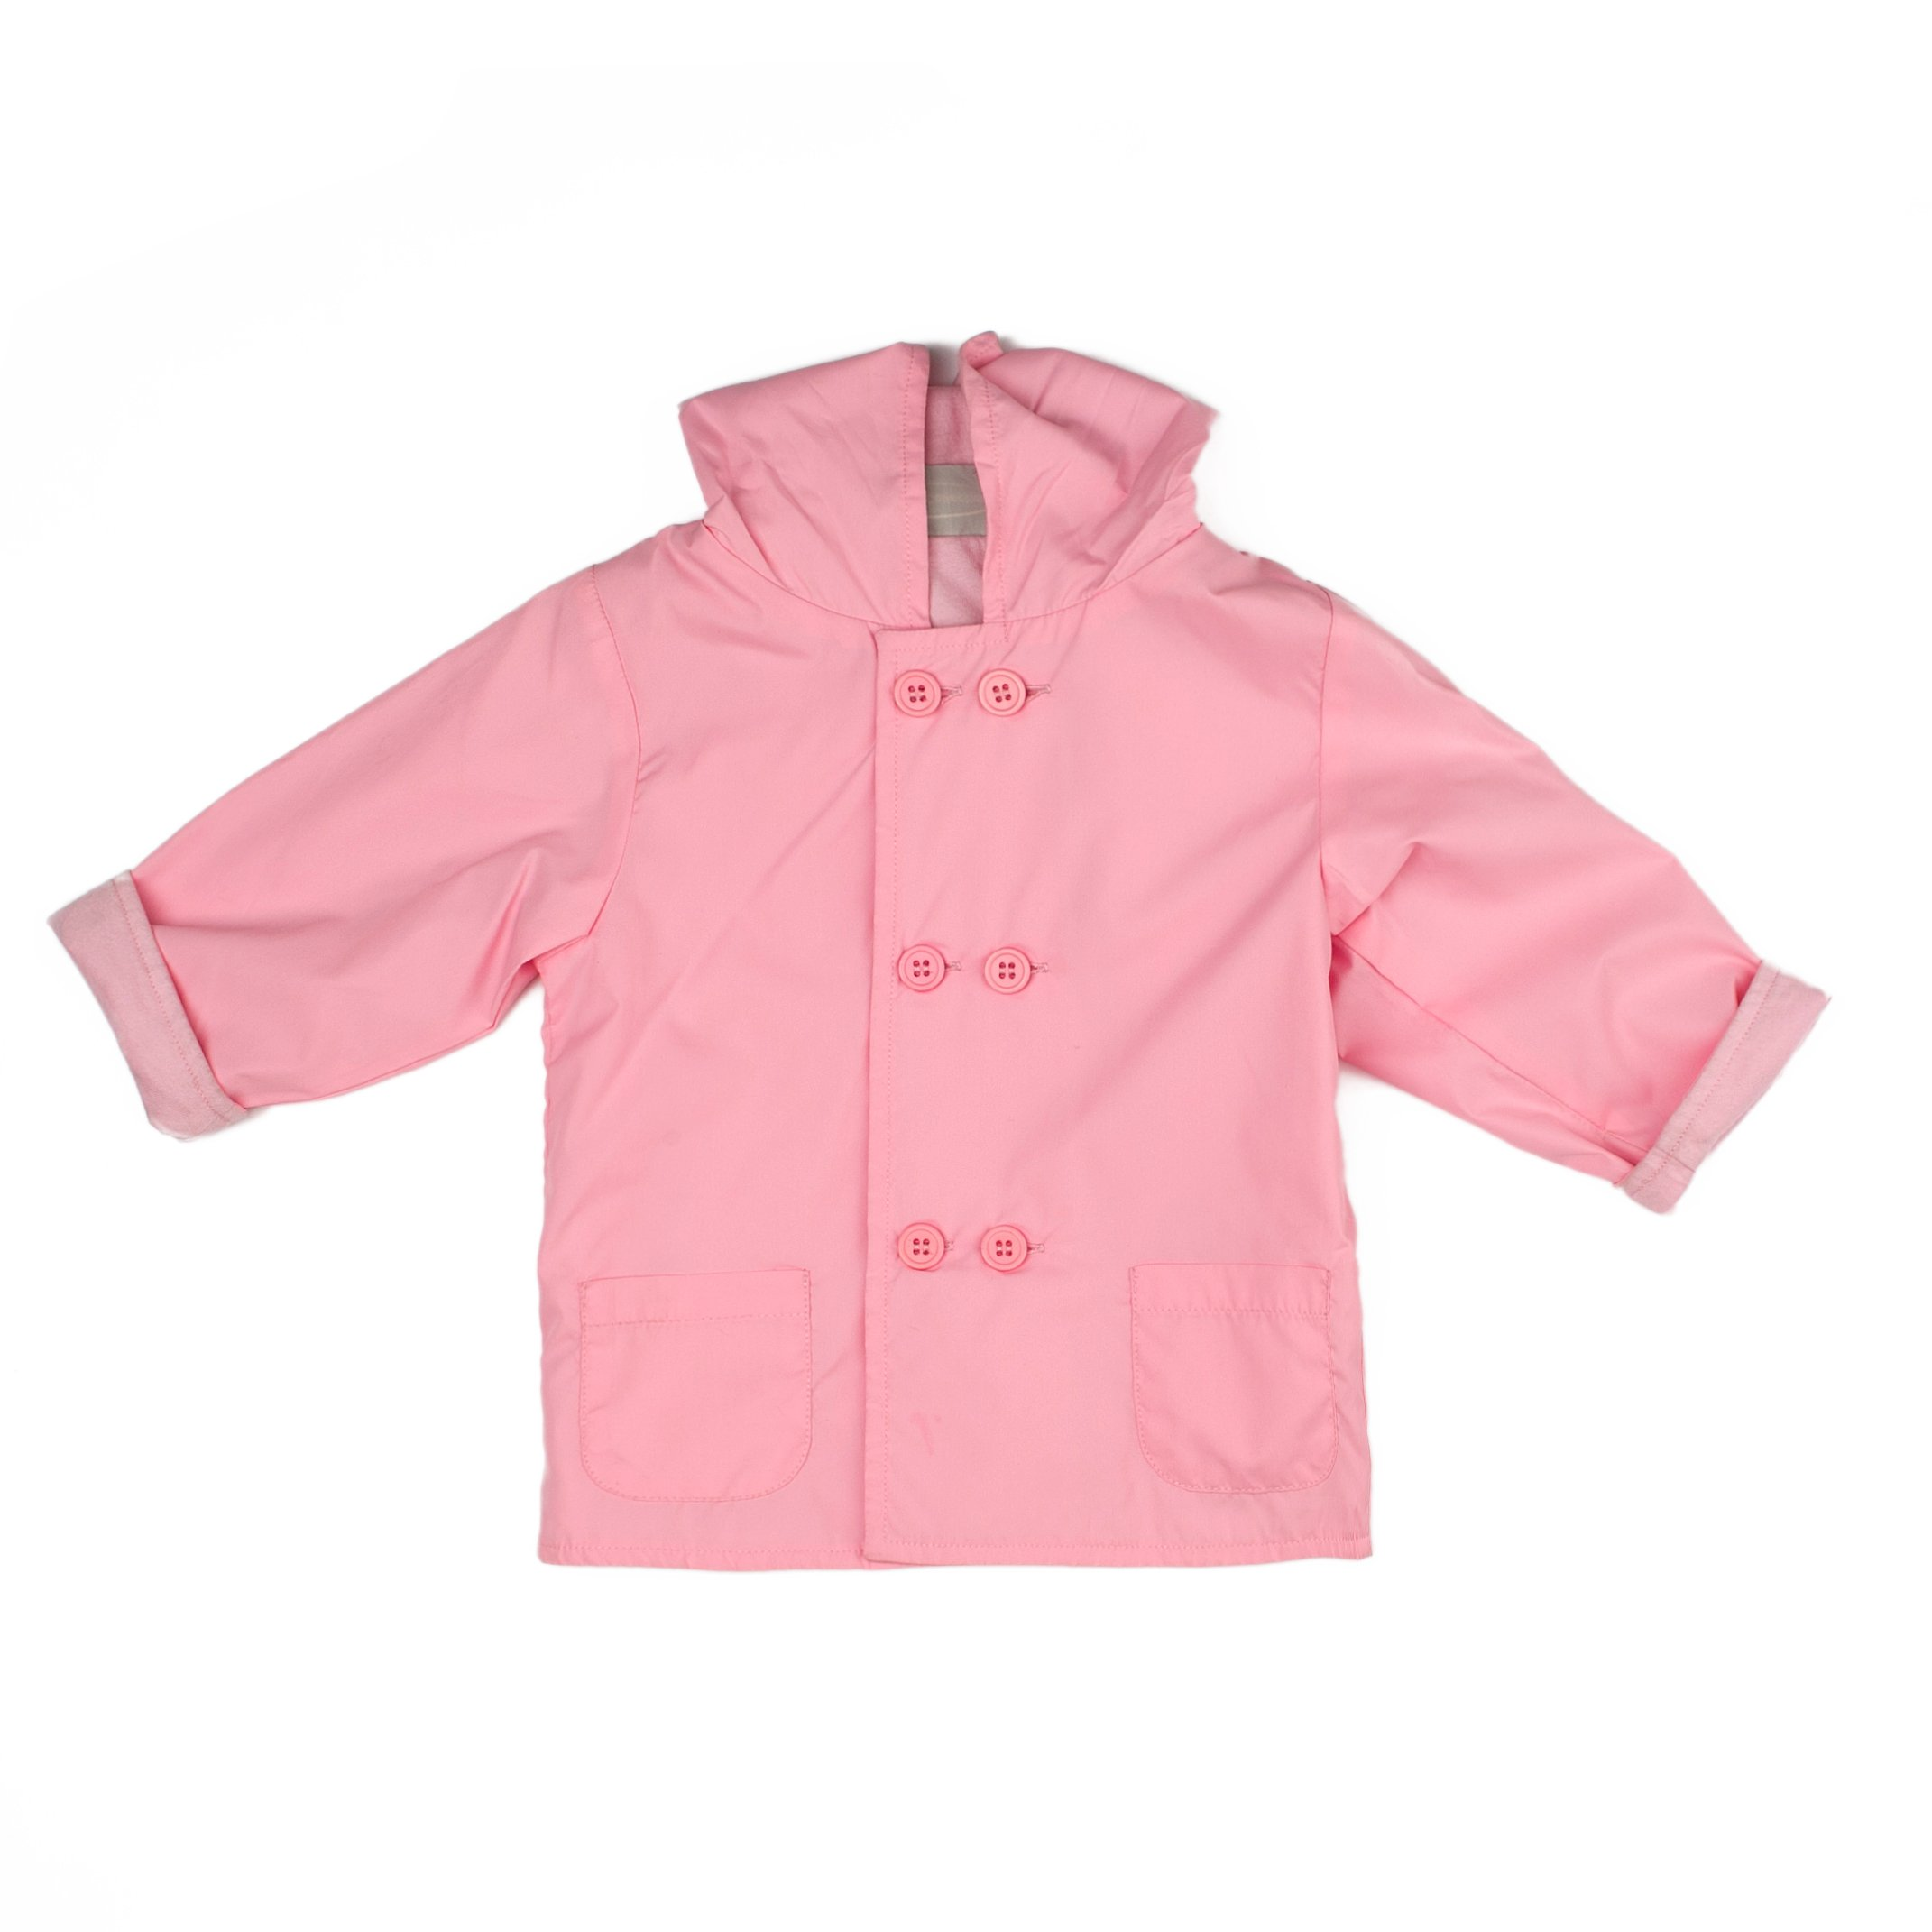 Boutique Collection Pink Hooded Jacket-Raincoat w/Double Buttons & Cotton Lining - Girls and Boys by Boutique Collection